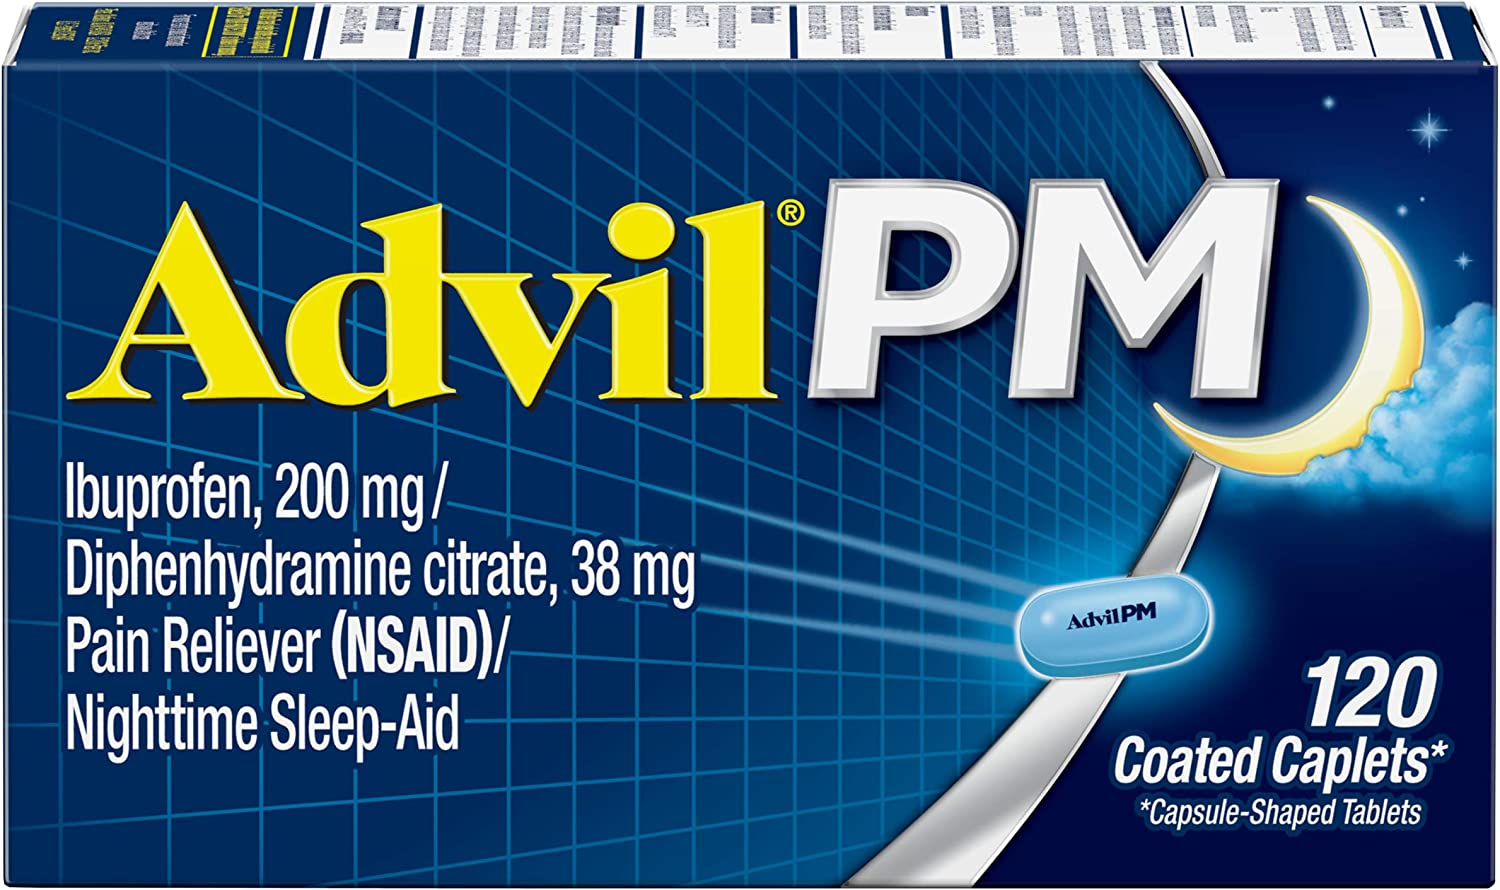 Advil PM (120 Count) Pain Reliever/Nighttime Sleep Aid Coated Caplet, 200mg Ibuprofen, 38mg Diphenhydramine: Health & Personal Care